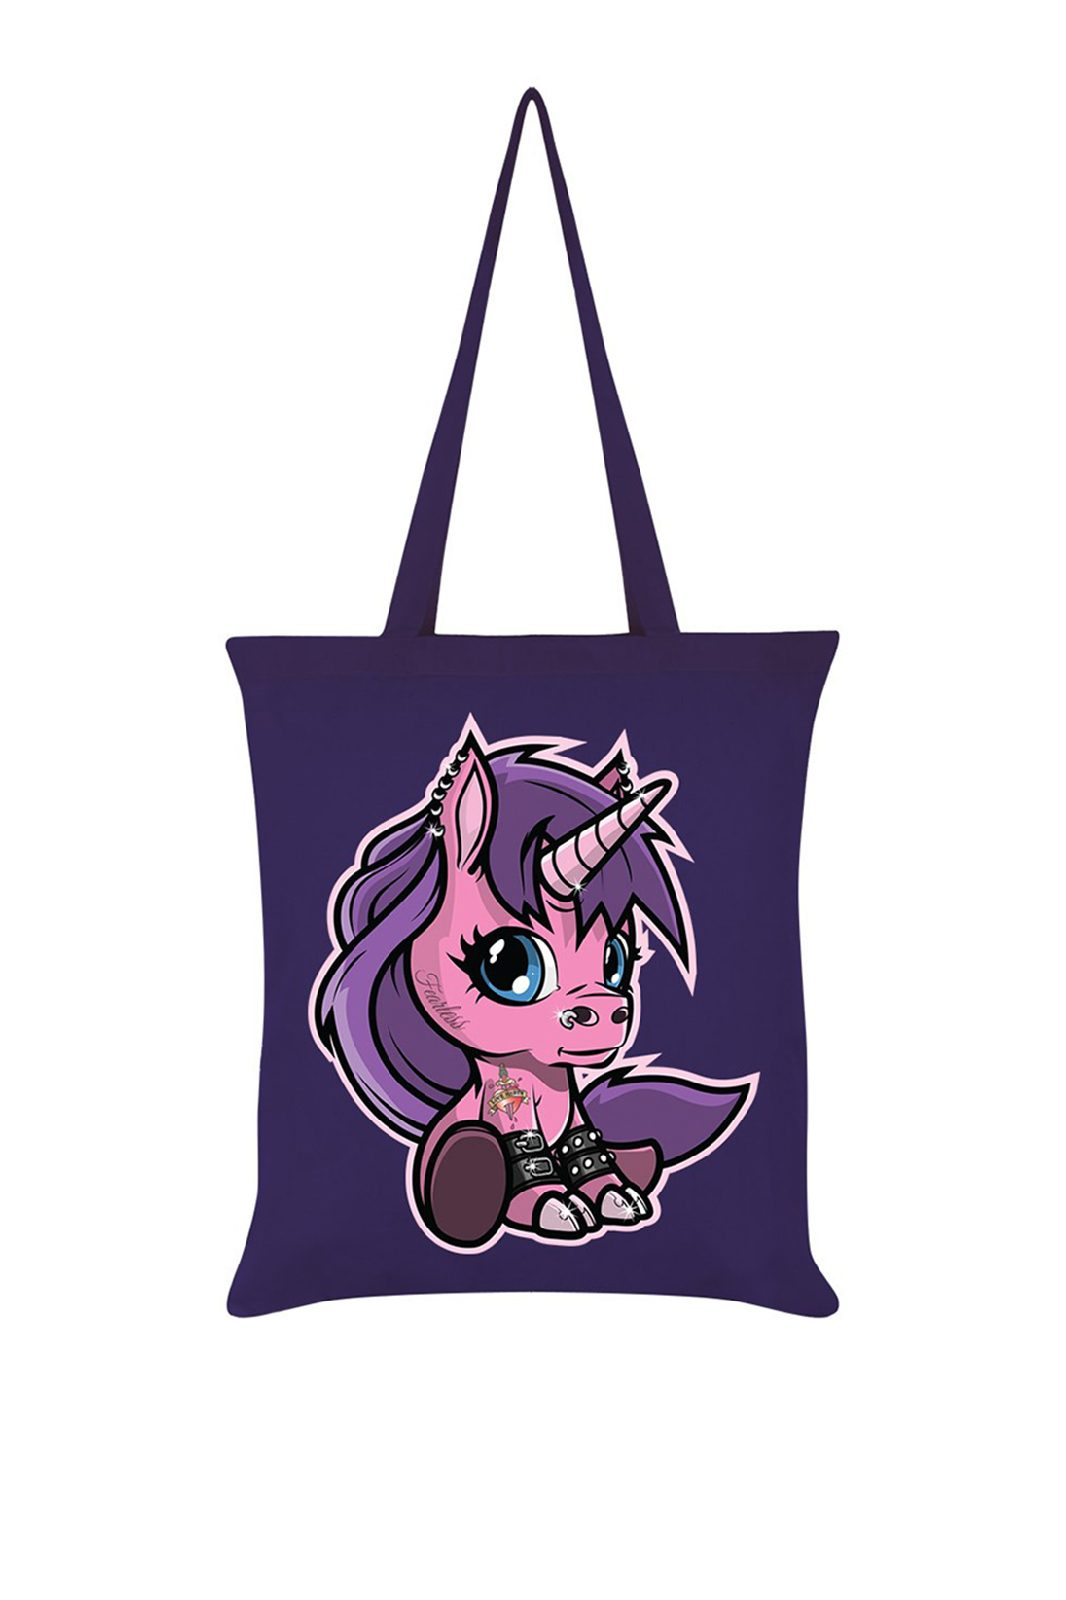 Fearless The Baby Unicorn Purple Tote Bag